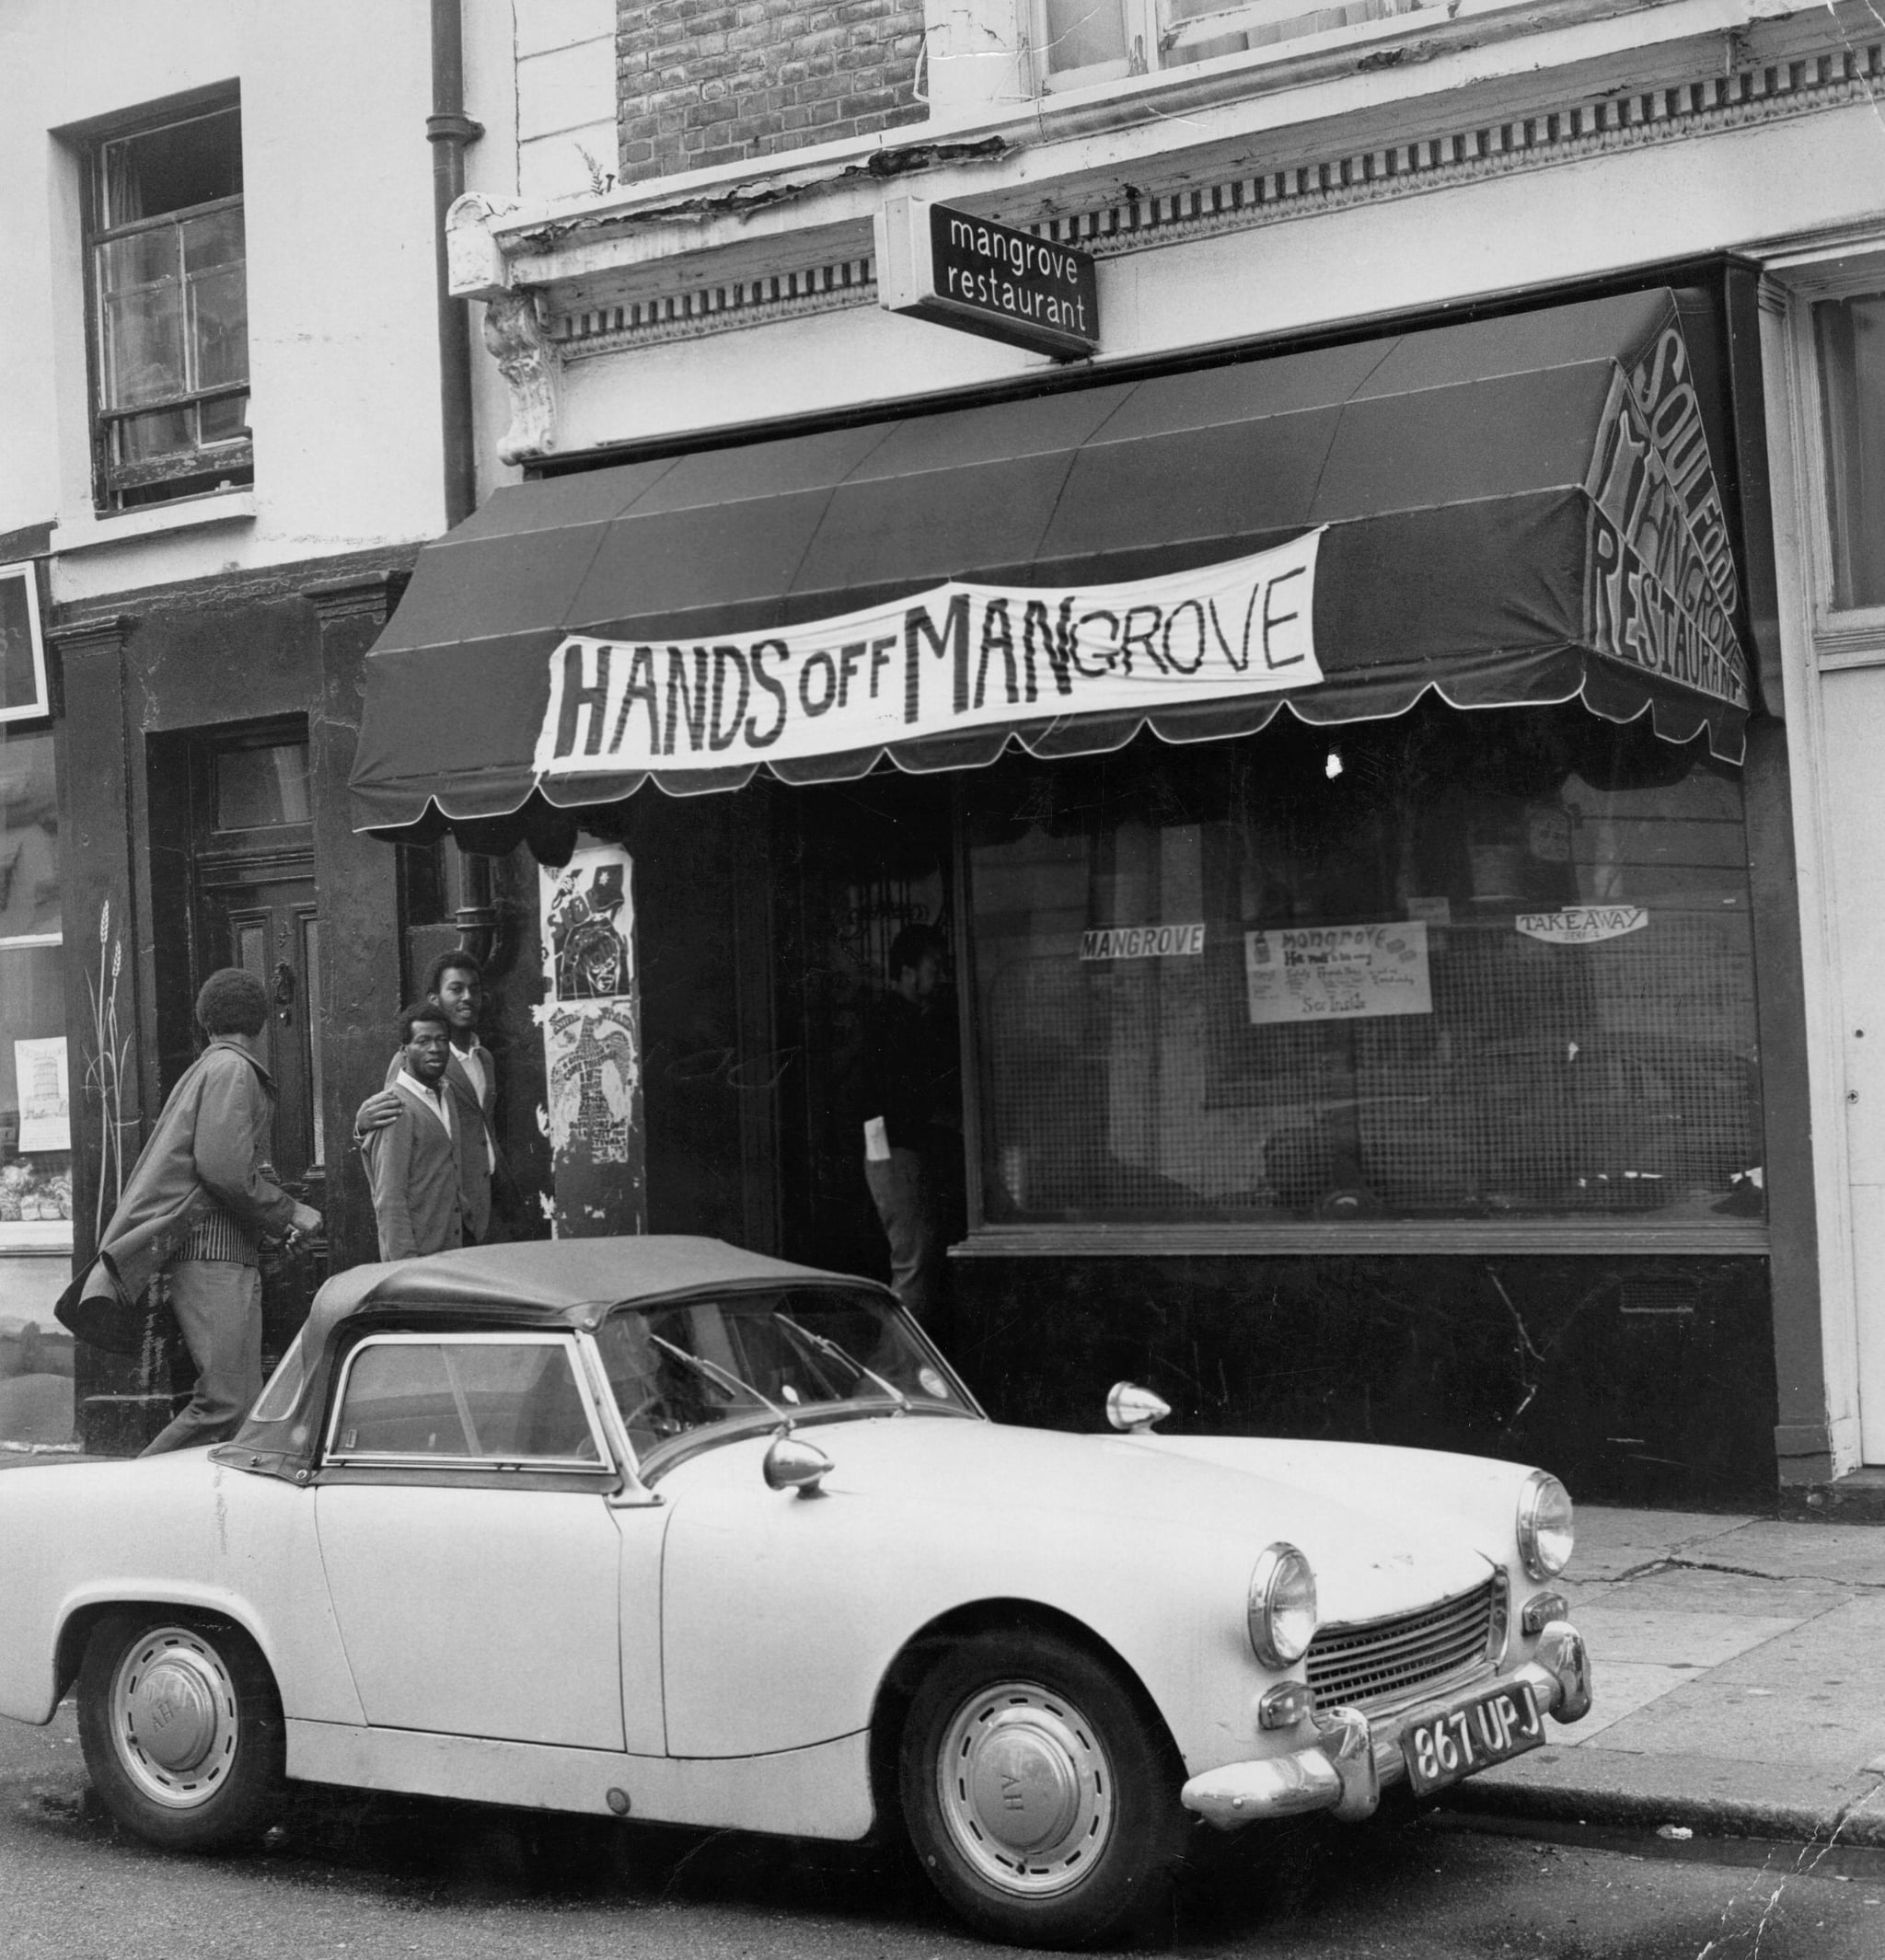 Four men entering the Mangrove, a Caribbean restaurant on All Saints Road, Notting Hill, London, 10th August 1970. The restaurant, seen here with a banner reading: 'Hands Off Mangrove' above it, has been repeatedly raided by the police in the last year, prompting a protest march to be organised by local residents. (Photo by Evening Standard/Hulton Archive/Getty images)